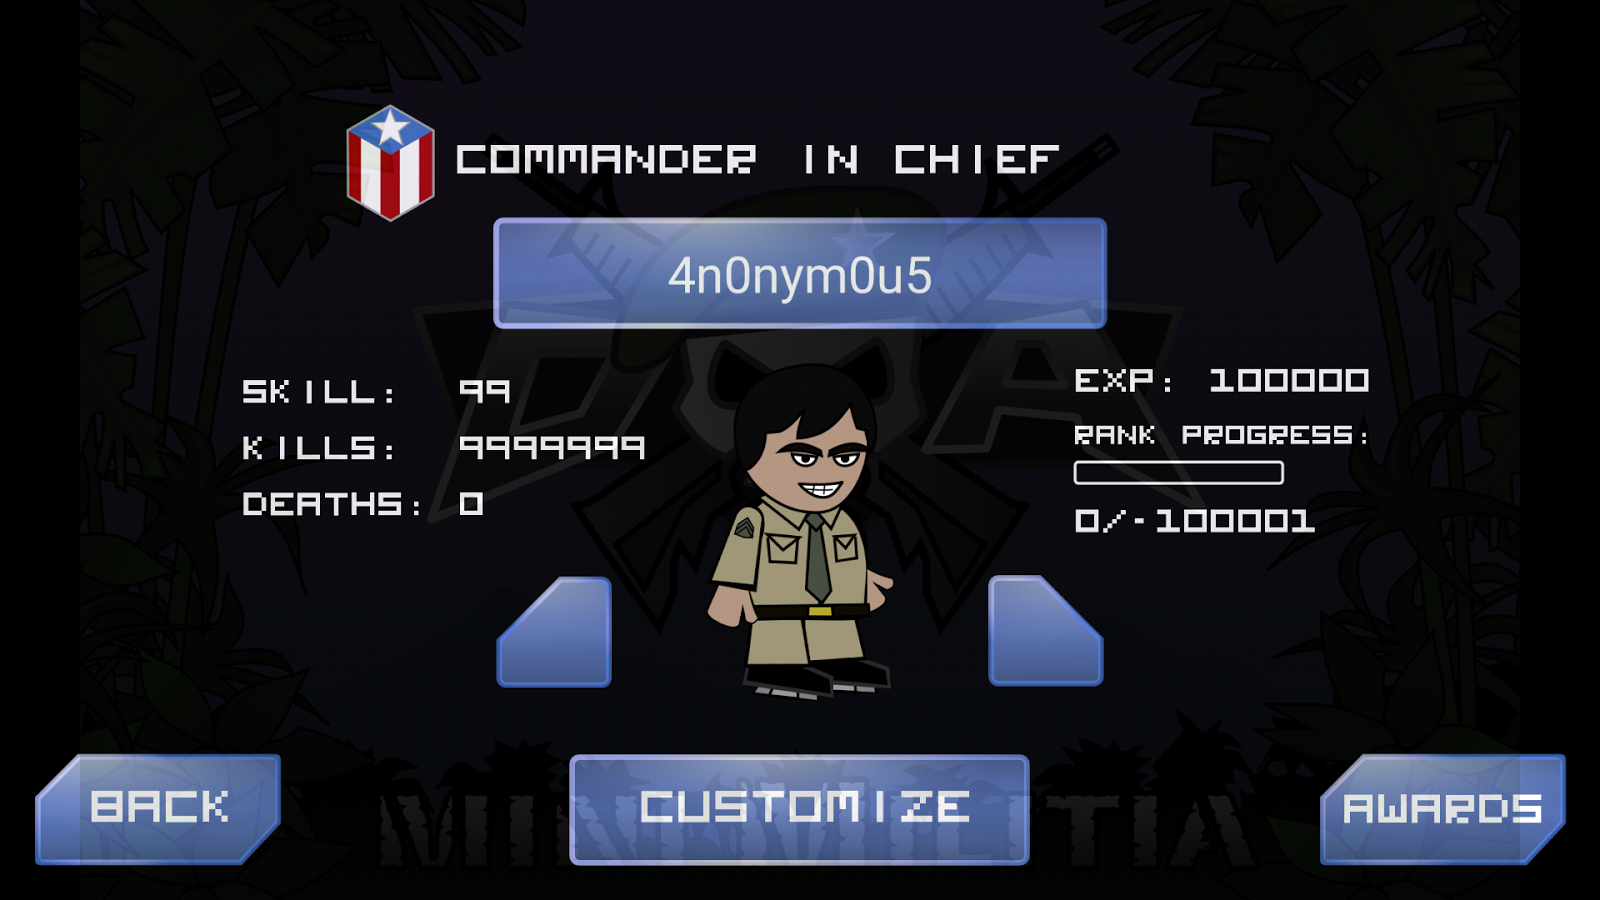 [UPDATE] [FIRST ON NET] POINTS AND EXPERIENCE HACK - Doodle Army 2 : Mini Militia Android Hack ...